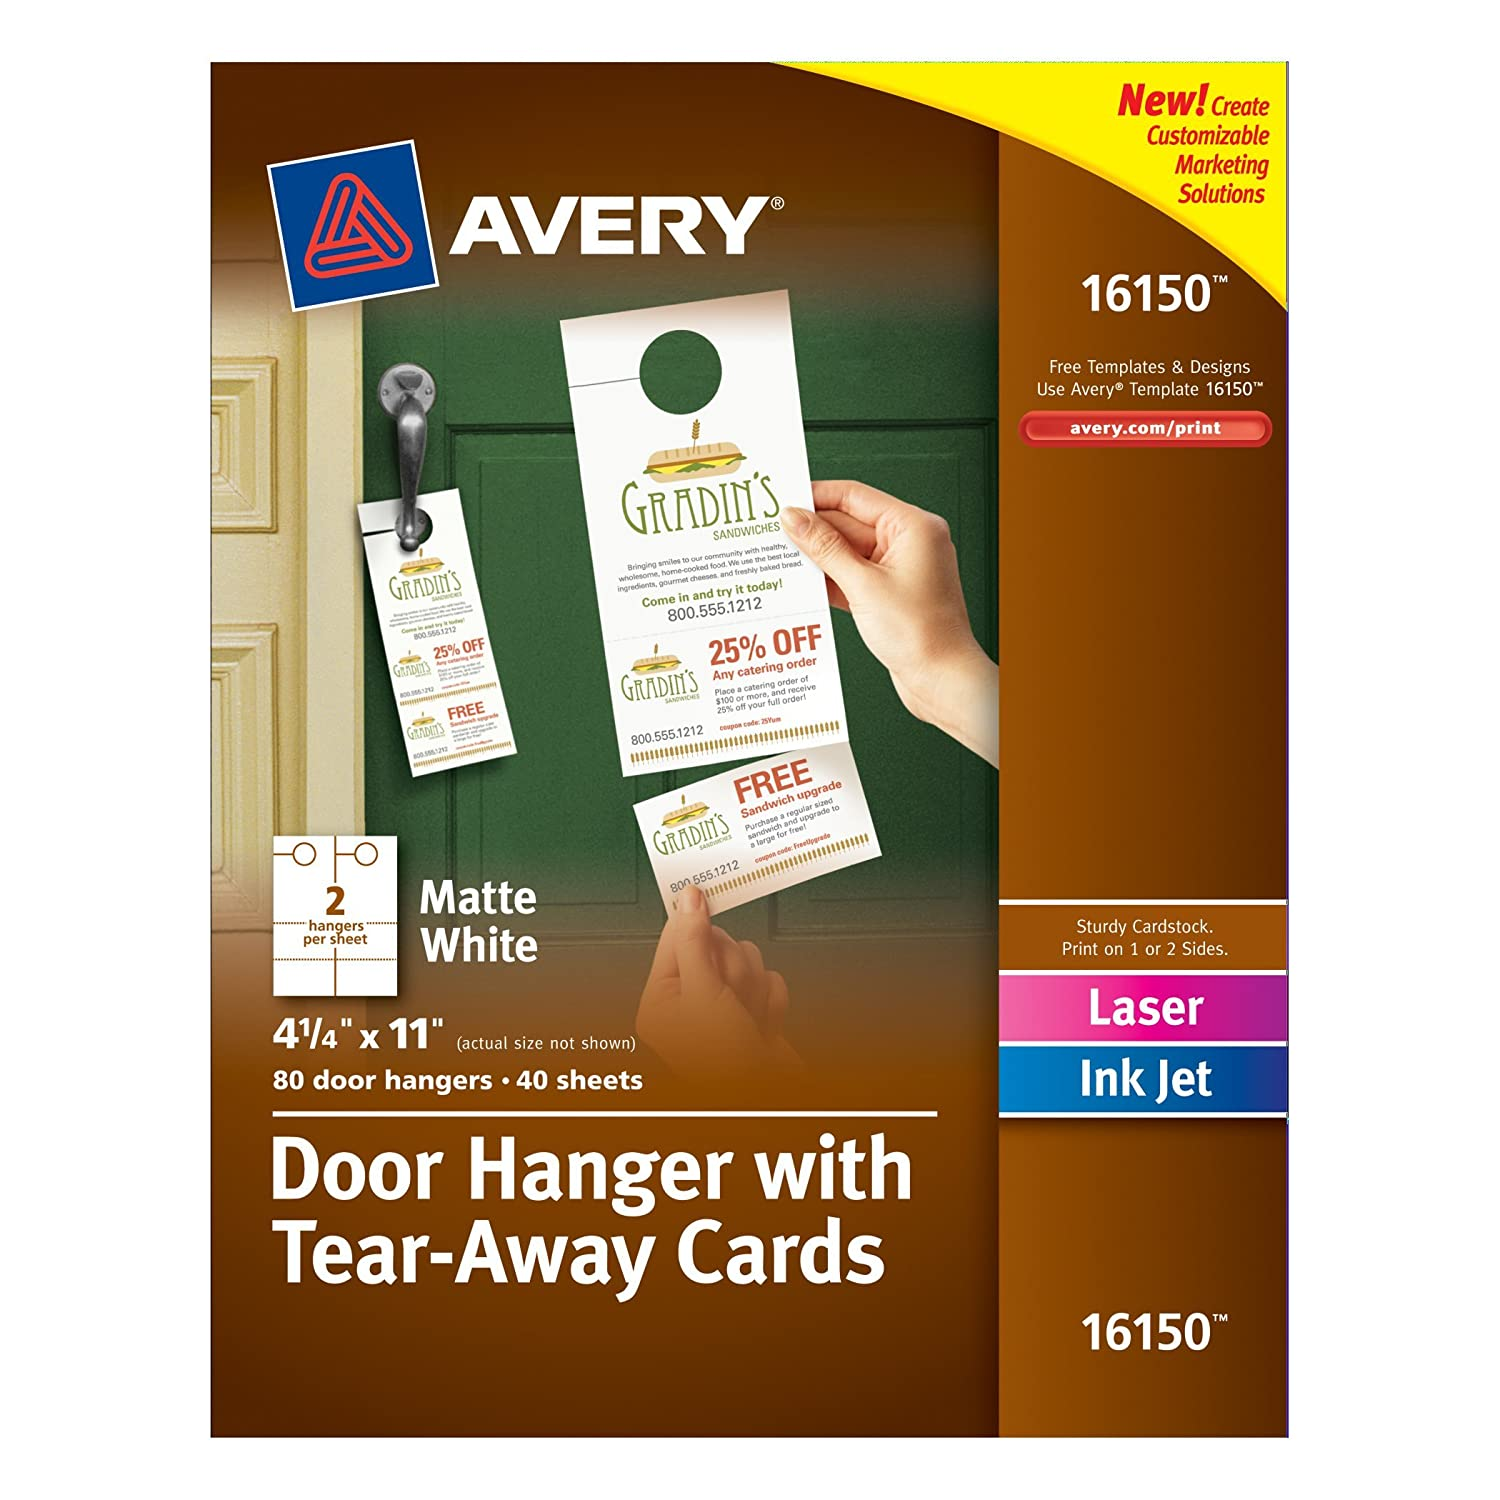 Door flyers cheap door hangers sc 1 st a printer 4u amazon avery door hanger with tear away cards matte white 425 x 11 inches pack of 80 16150 business card stock office products sc 1 st amazon magicingreecefo Image collections